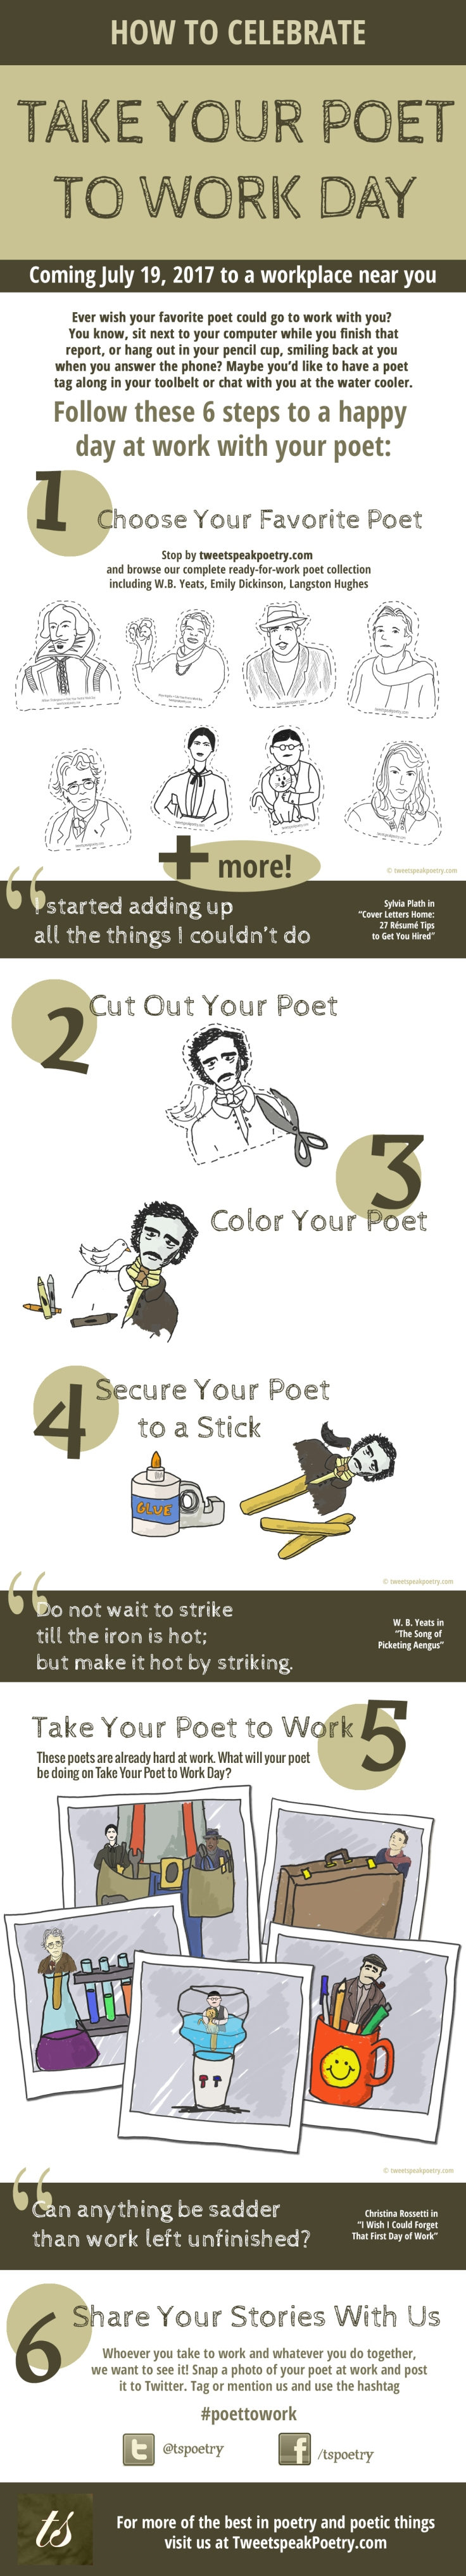 Take-Your-Poet-to-Work-Day-2017-Infographic.jpg